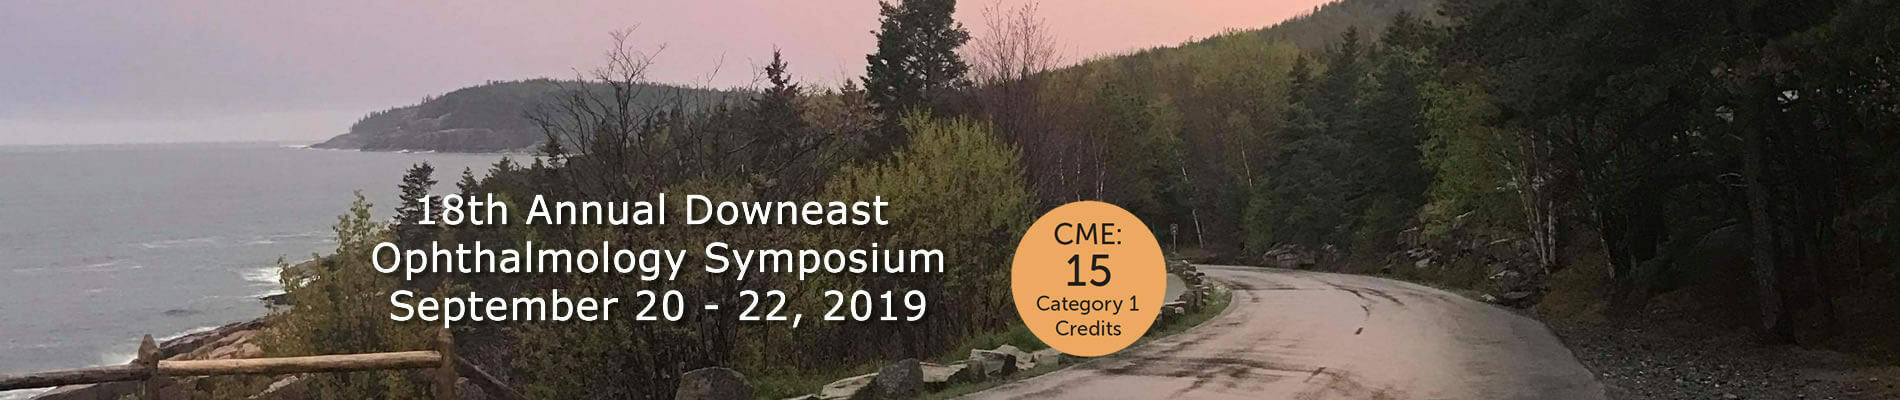 Link to 18th Annual Downeast Ophthalmology Symposium.